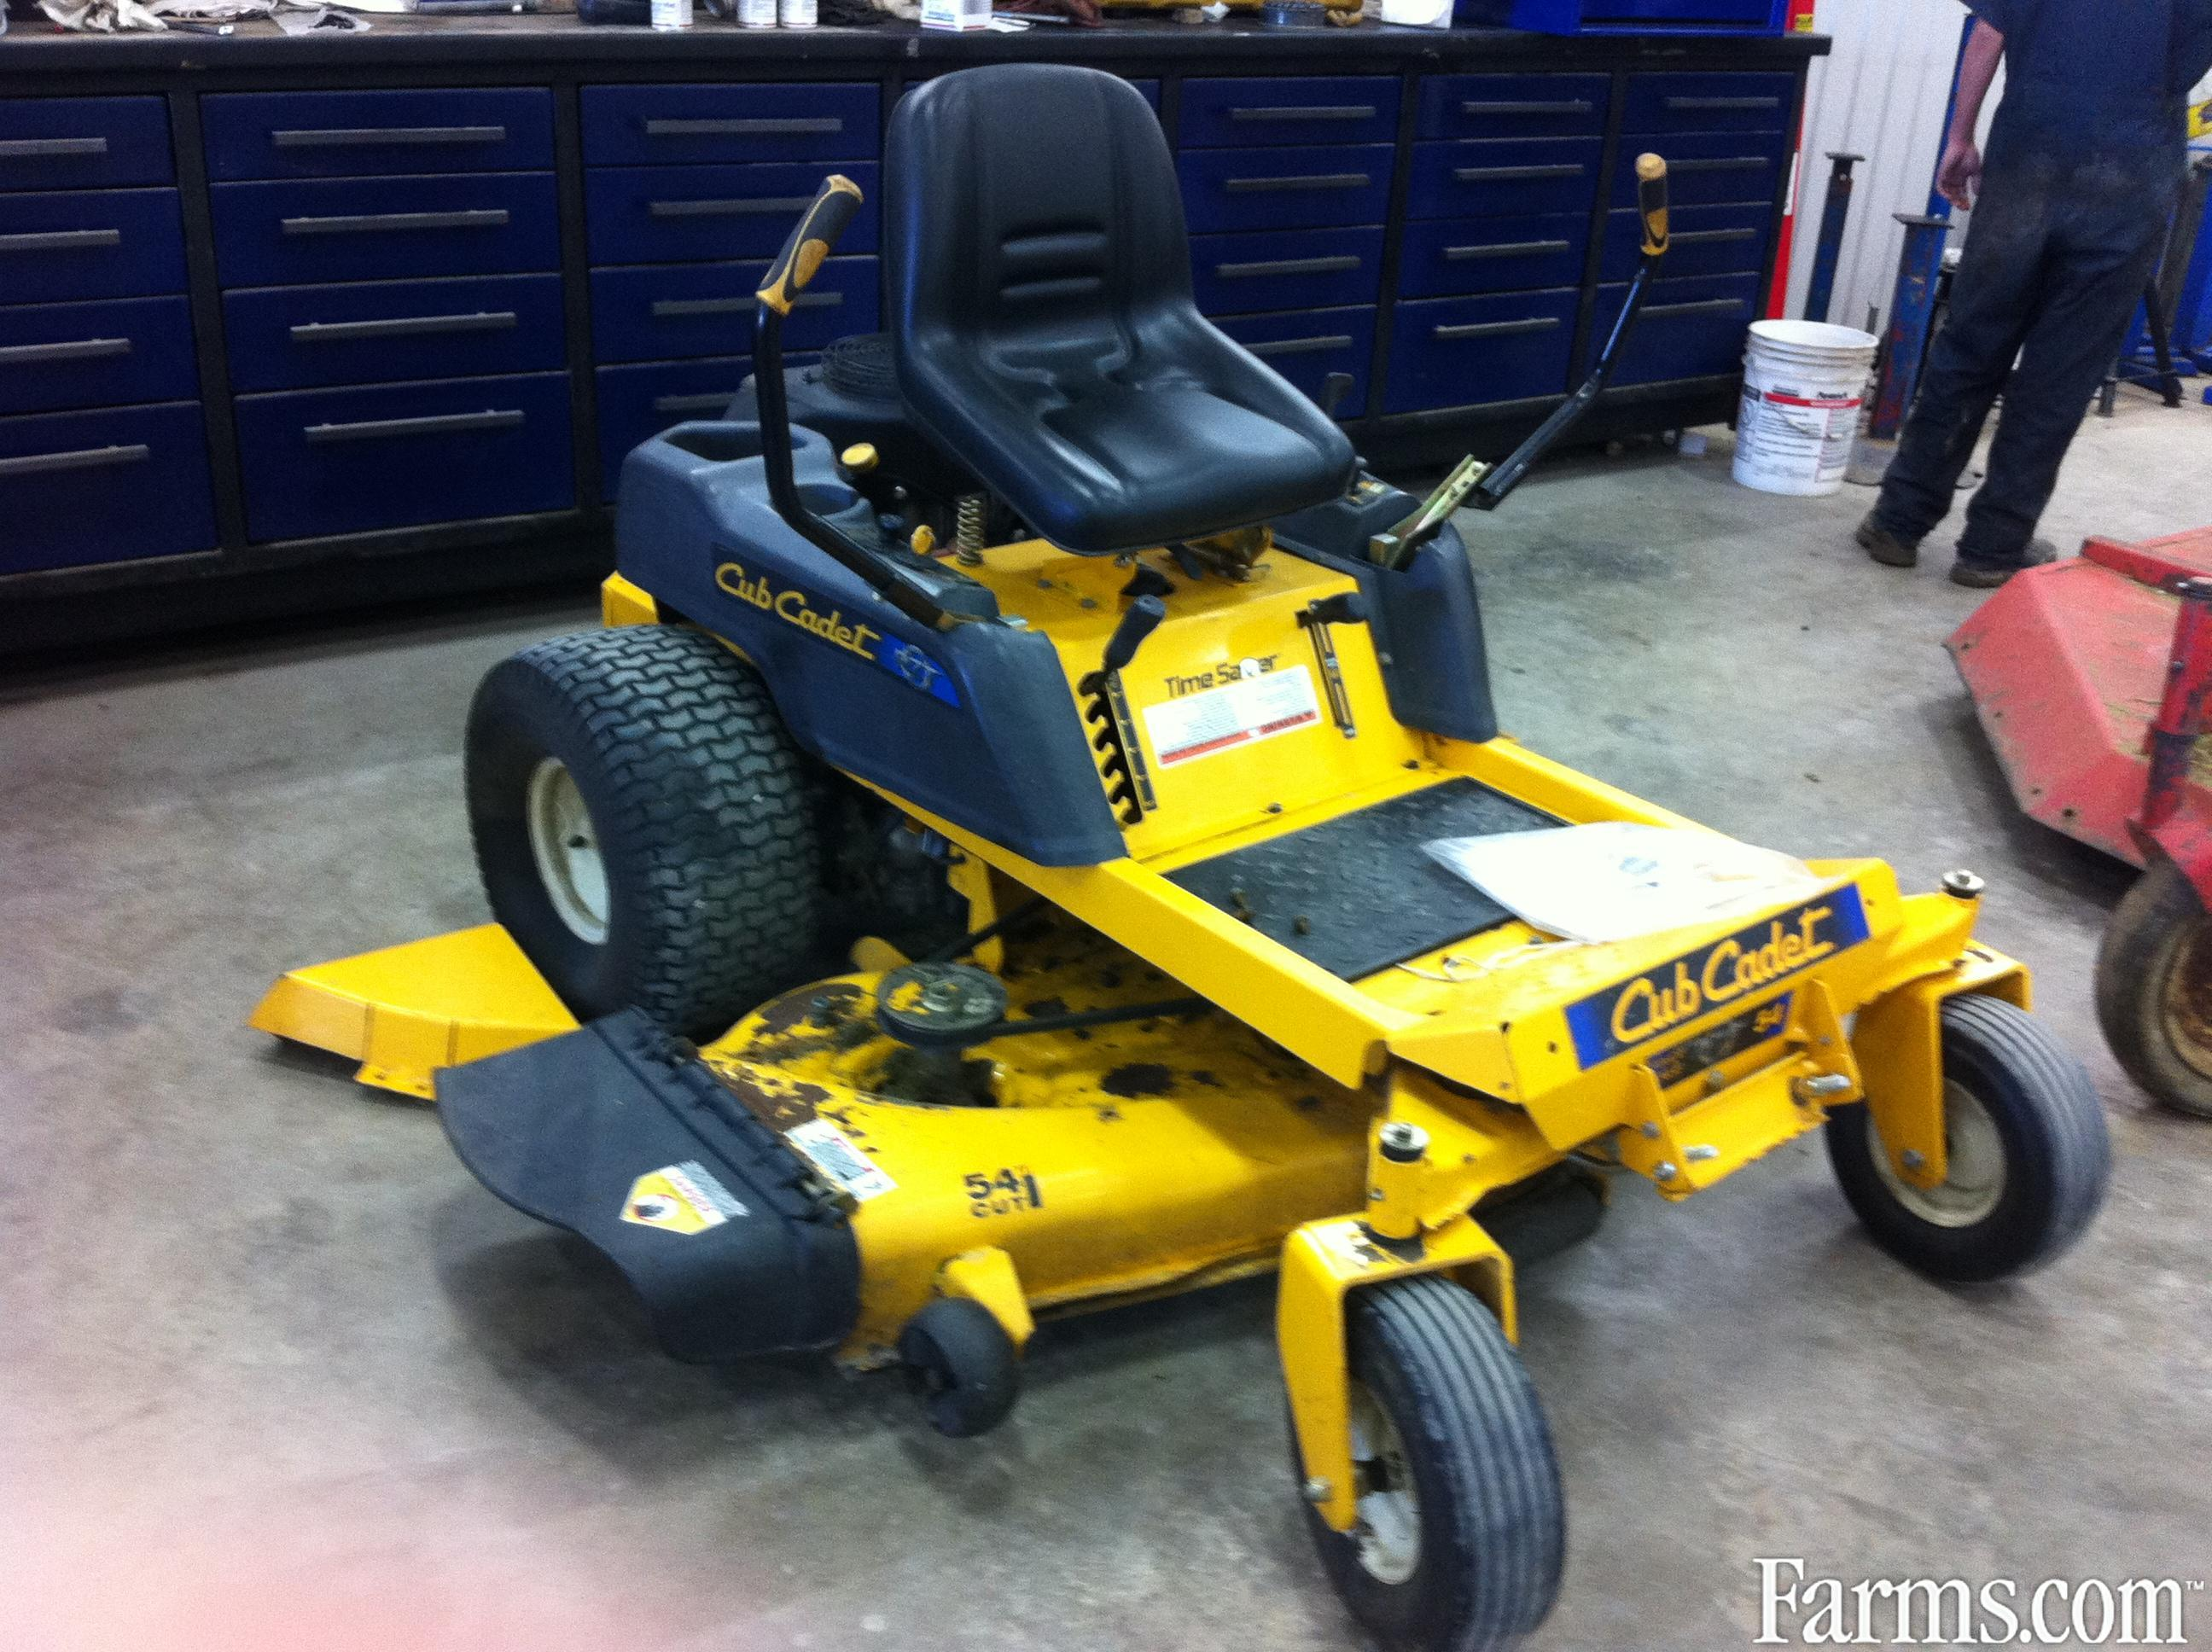 2007 Cub Cadet Rzt54 Riding Lawn Mower For Sale Farms Com